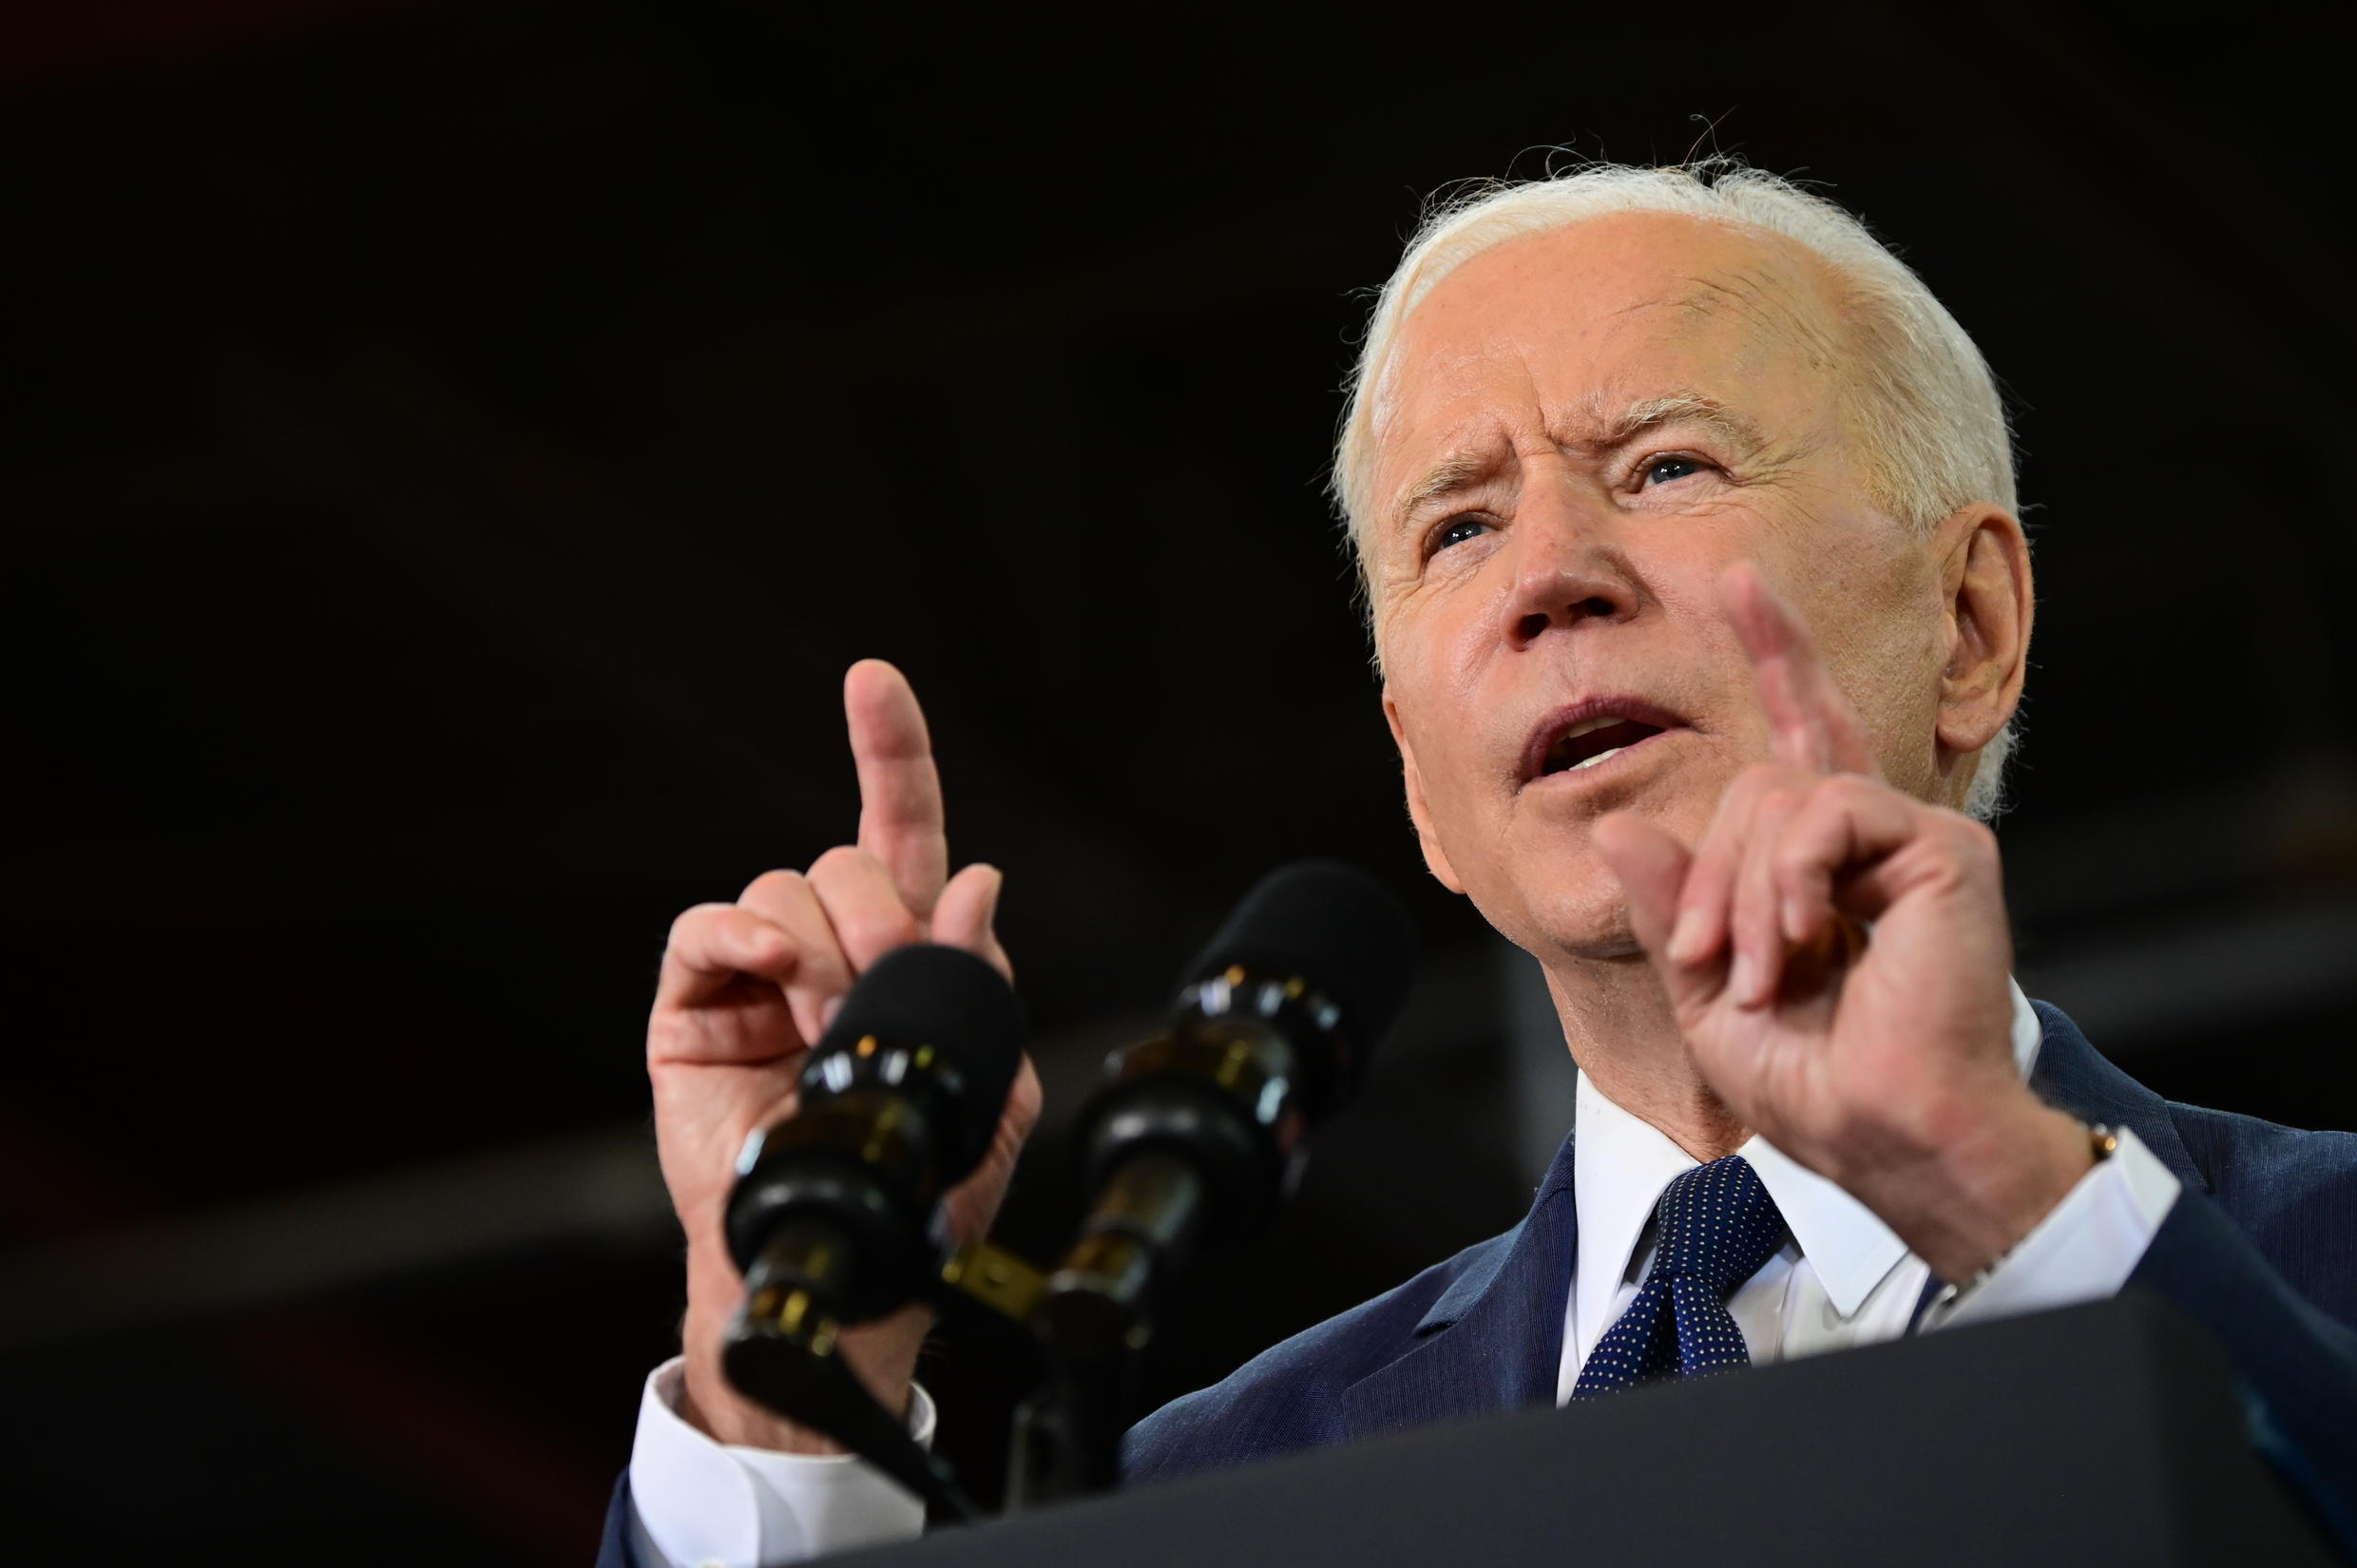 US President Joe Biden has decided not to throw out the first pitch of the Major League Baseball season, declining an invitation from the Washington Nationals to attend Thursday's home opener